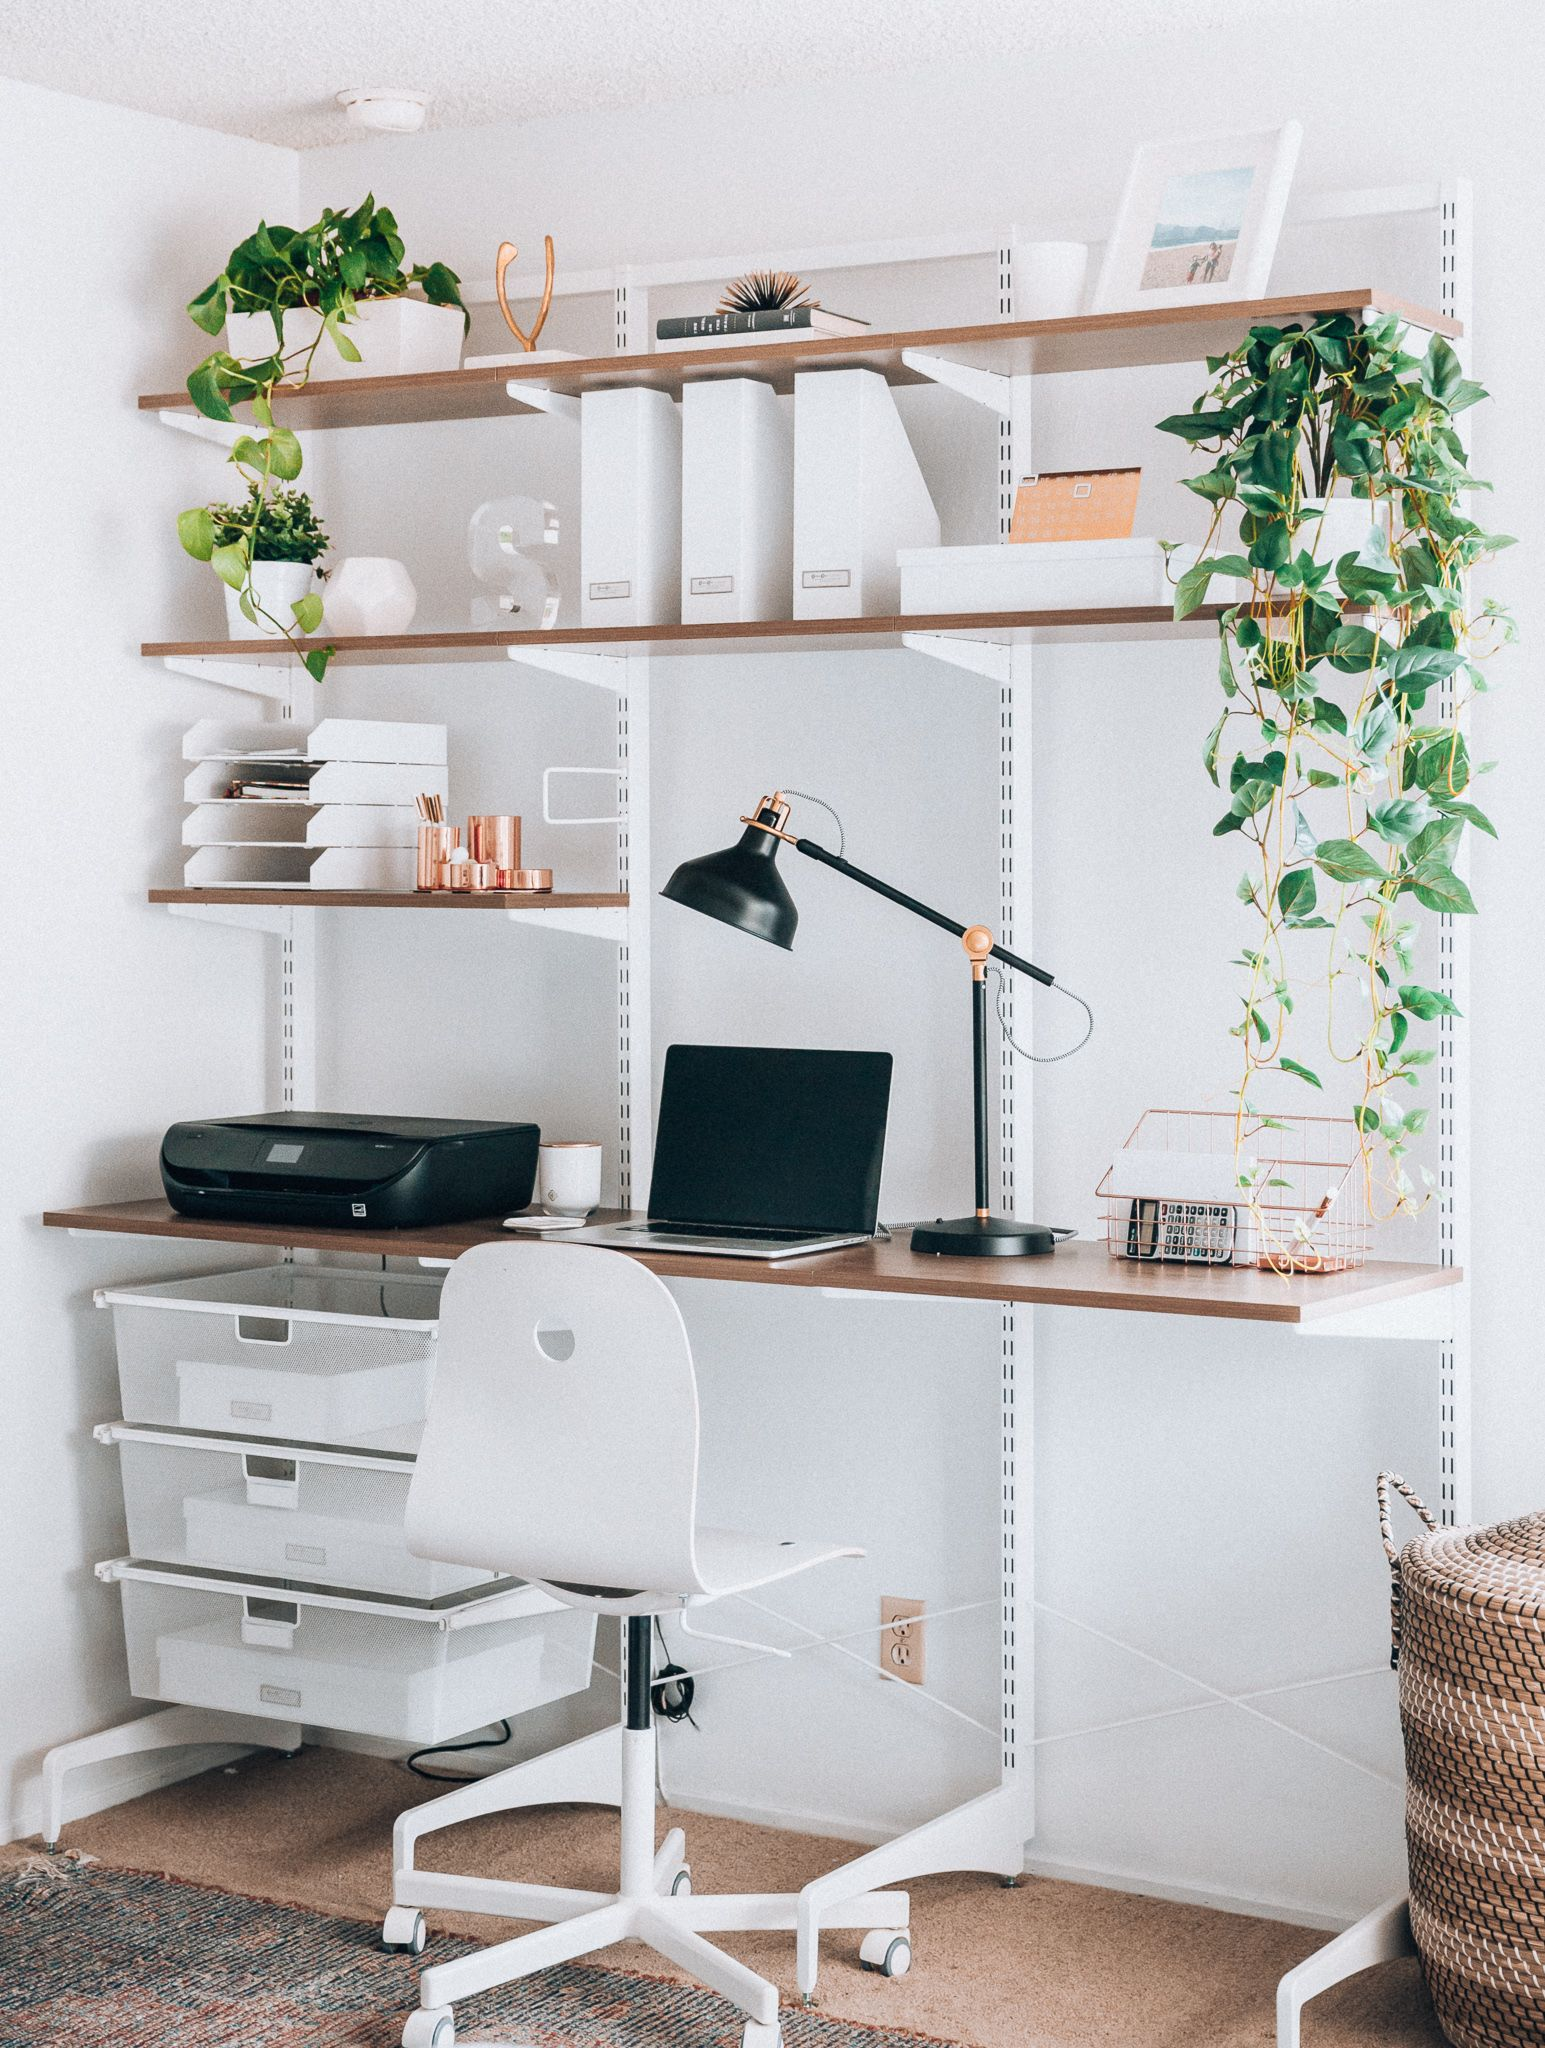 Modern Minimalist Home Office Space Ideas The Girl In The Yellow